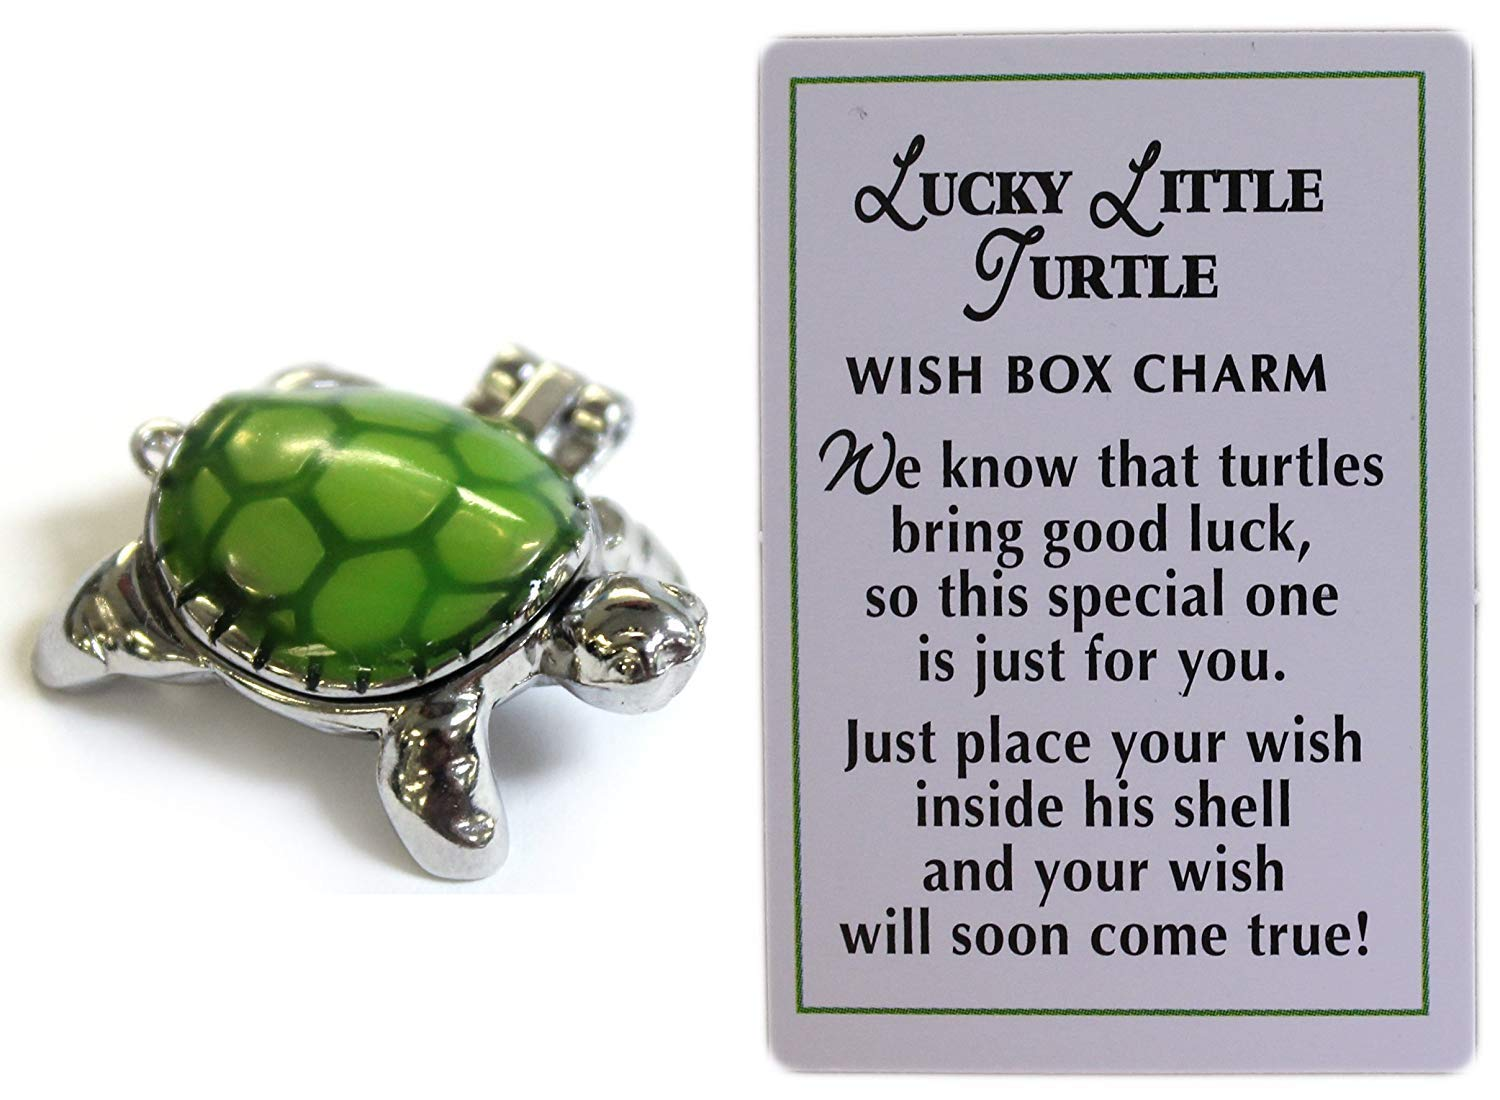 Ganz Lucky Little Turtle Wish Box Charm With Story Card!